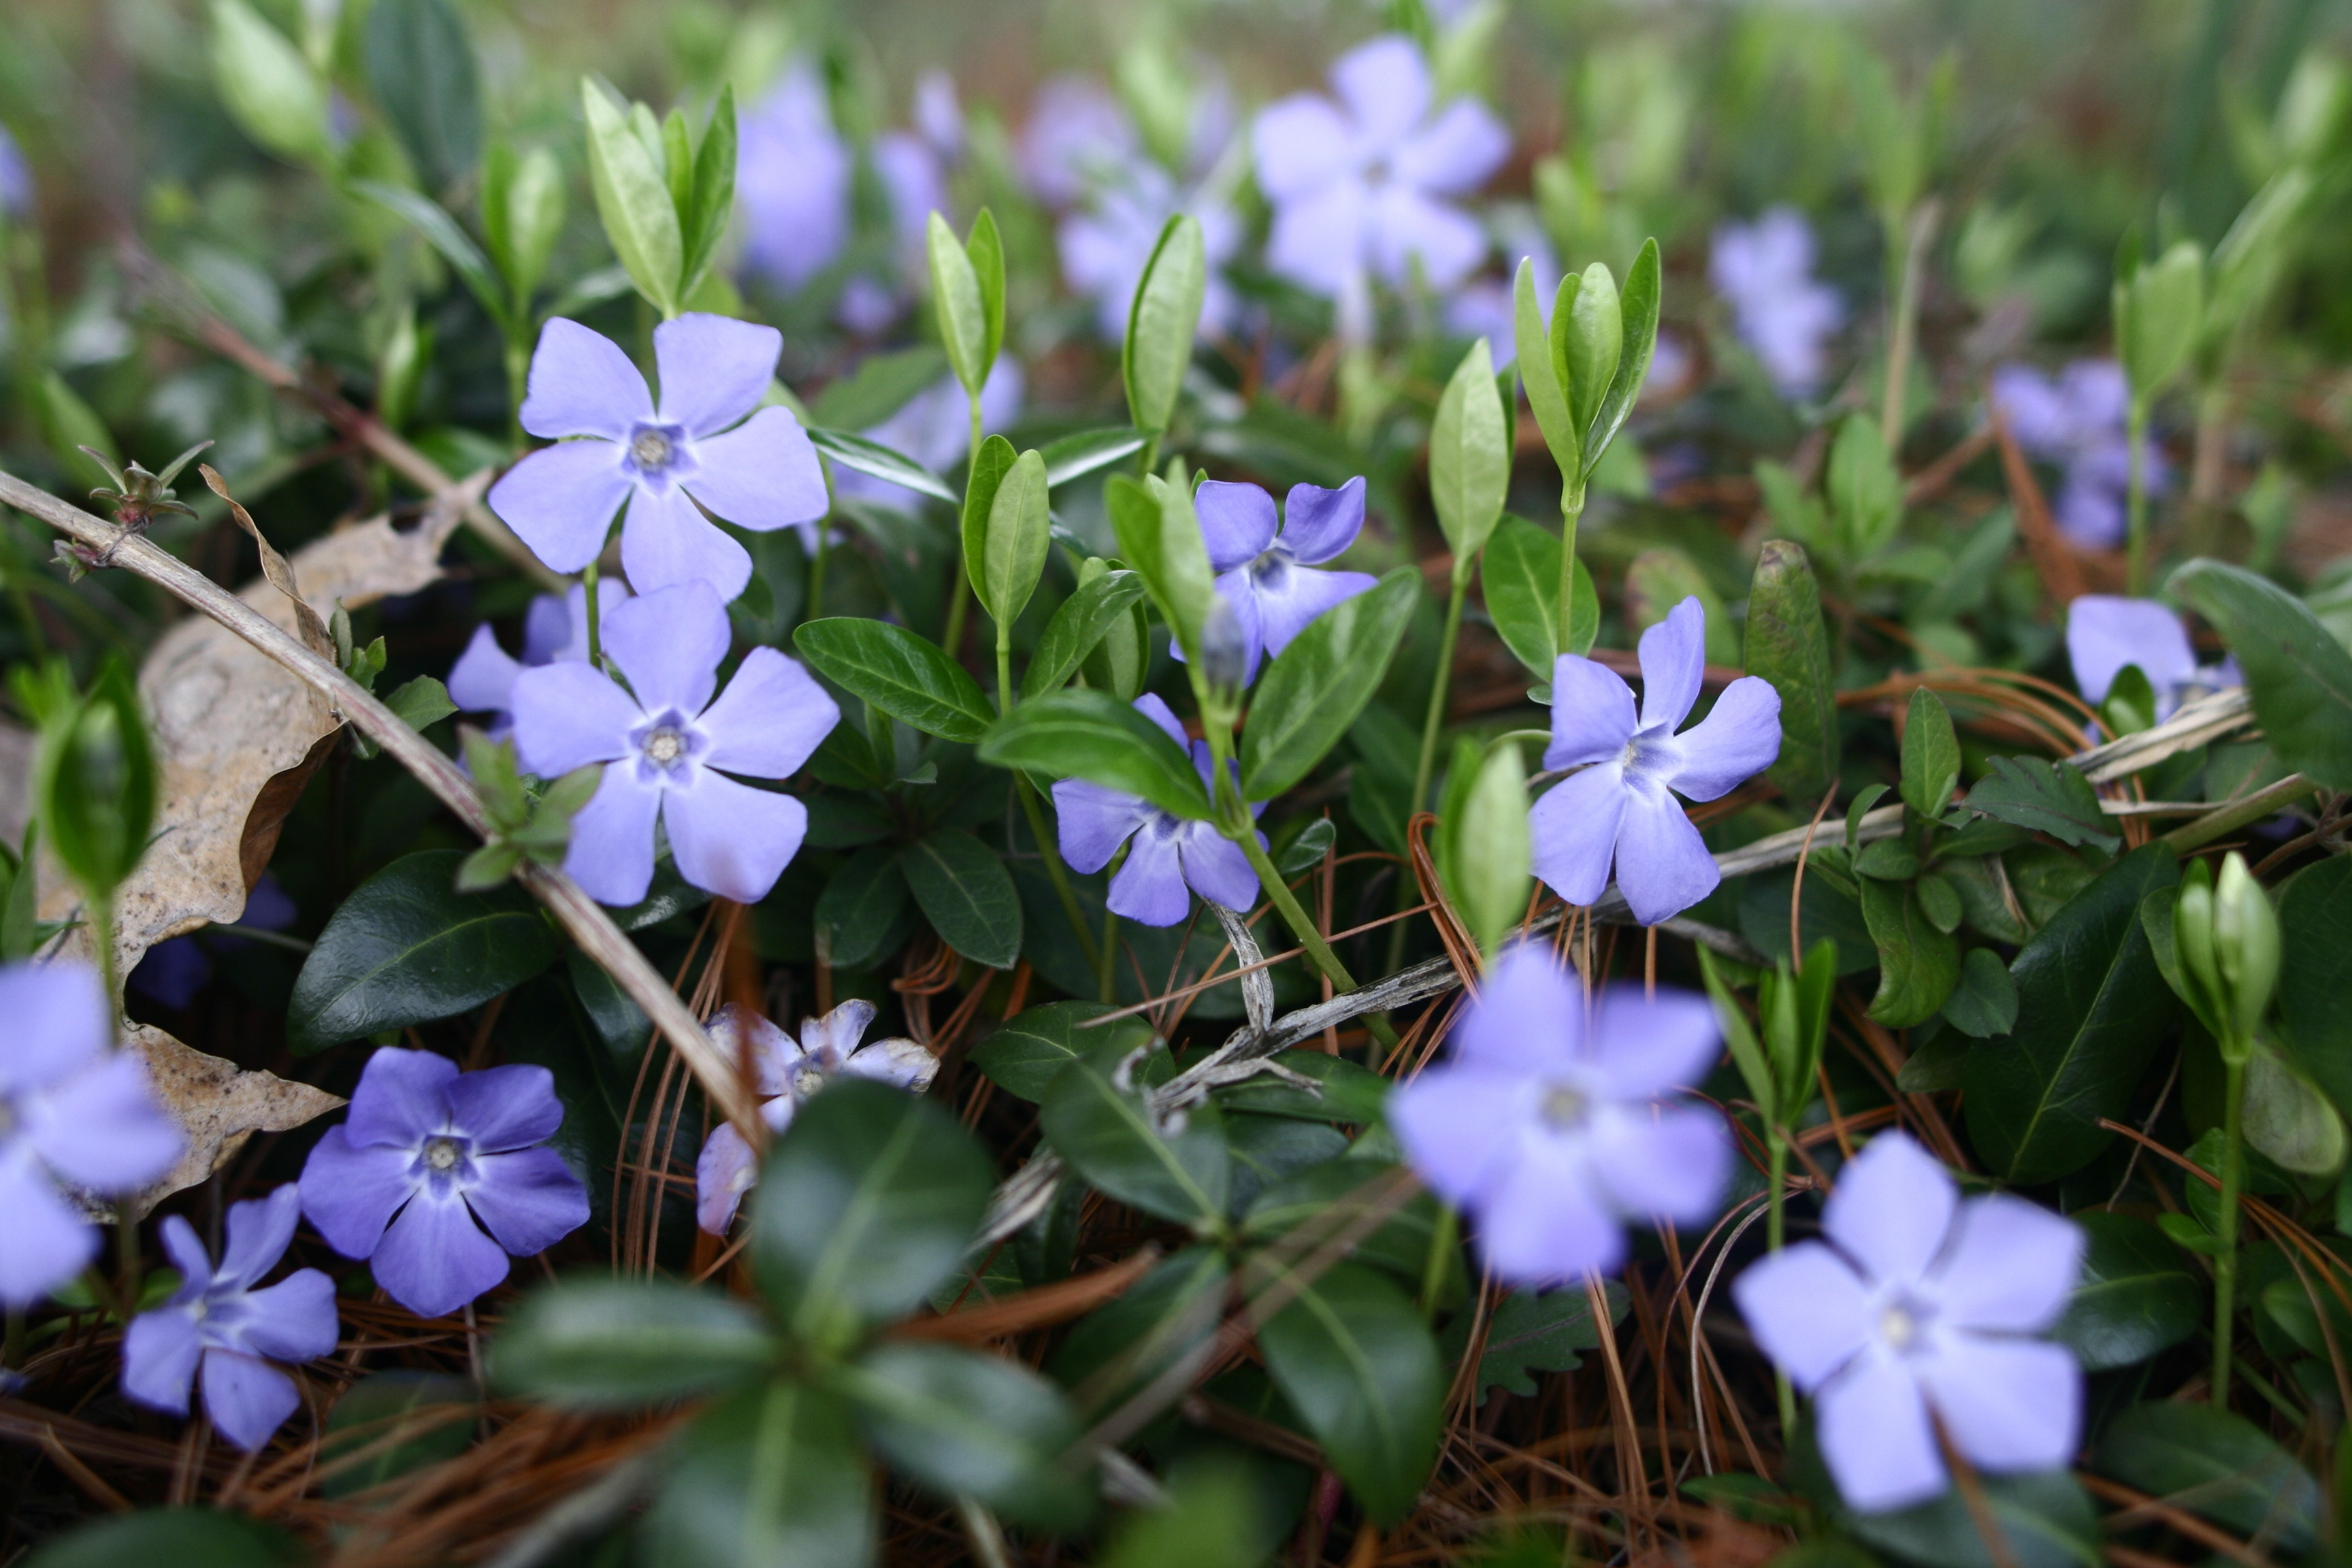 Forget Me Not Flower Full Hd